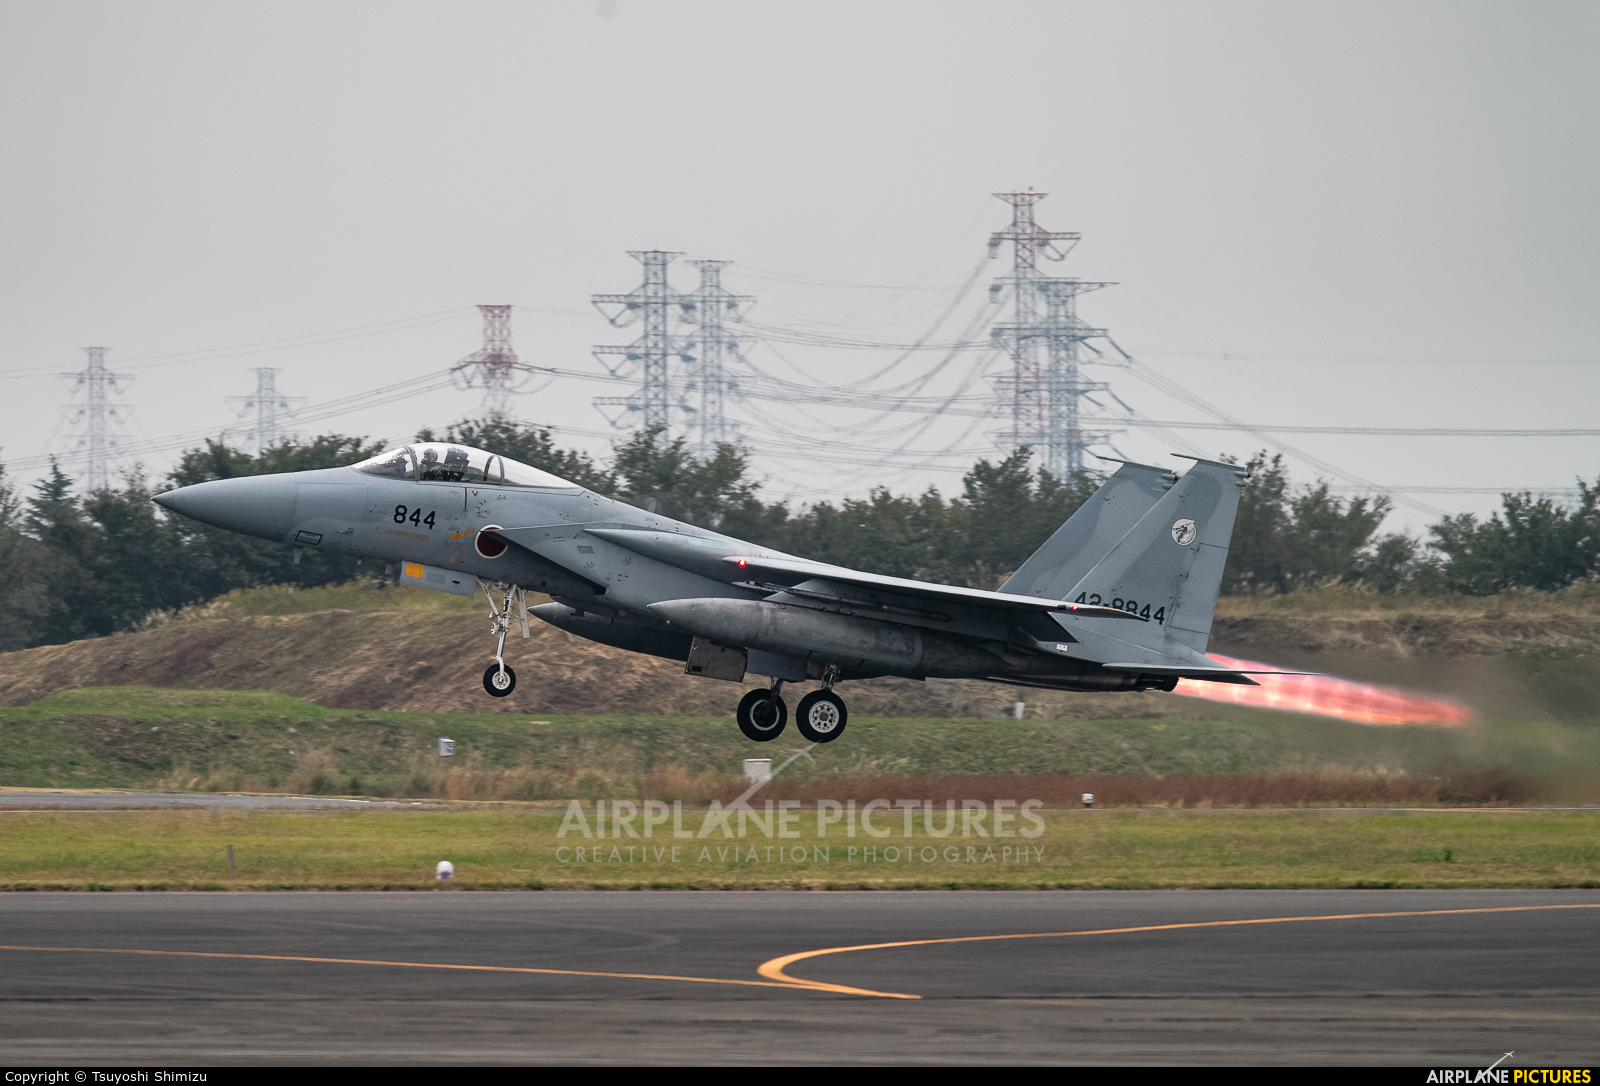 Japan - Air Self Defence Force 42-8844 aircraft at Iruma AB